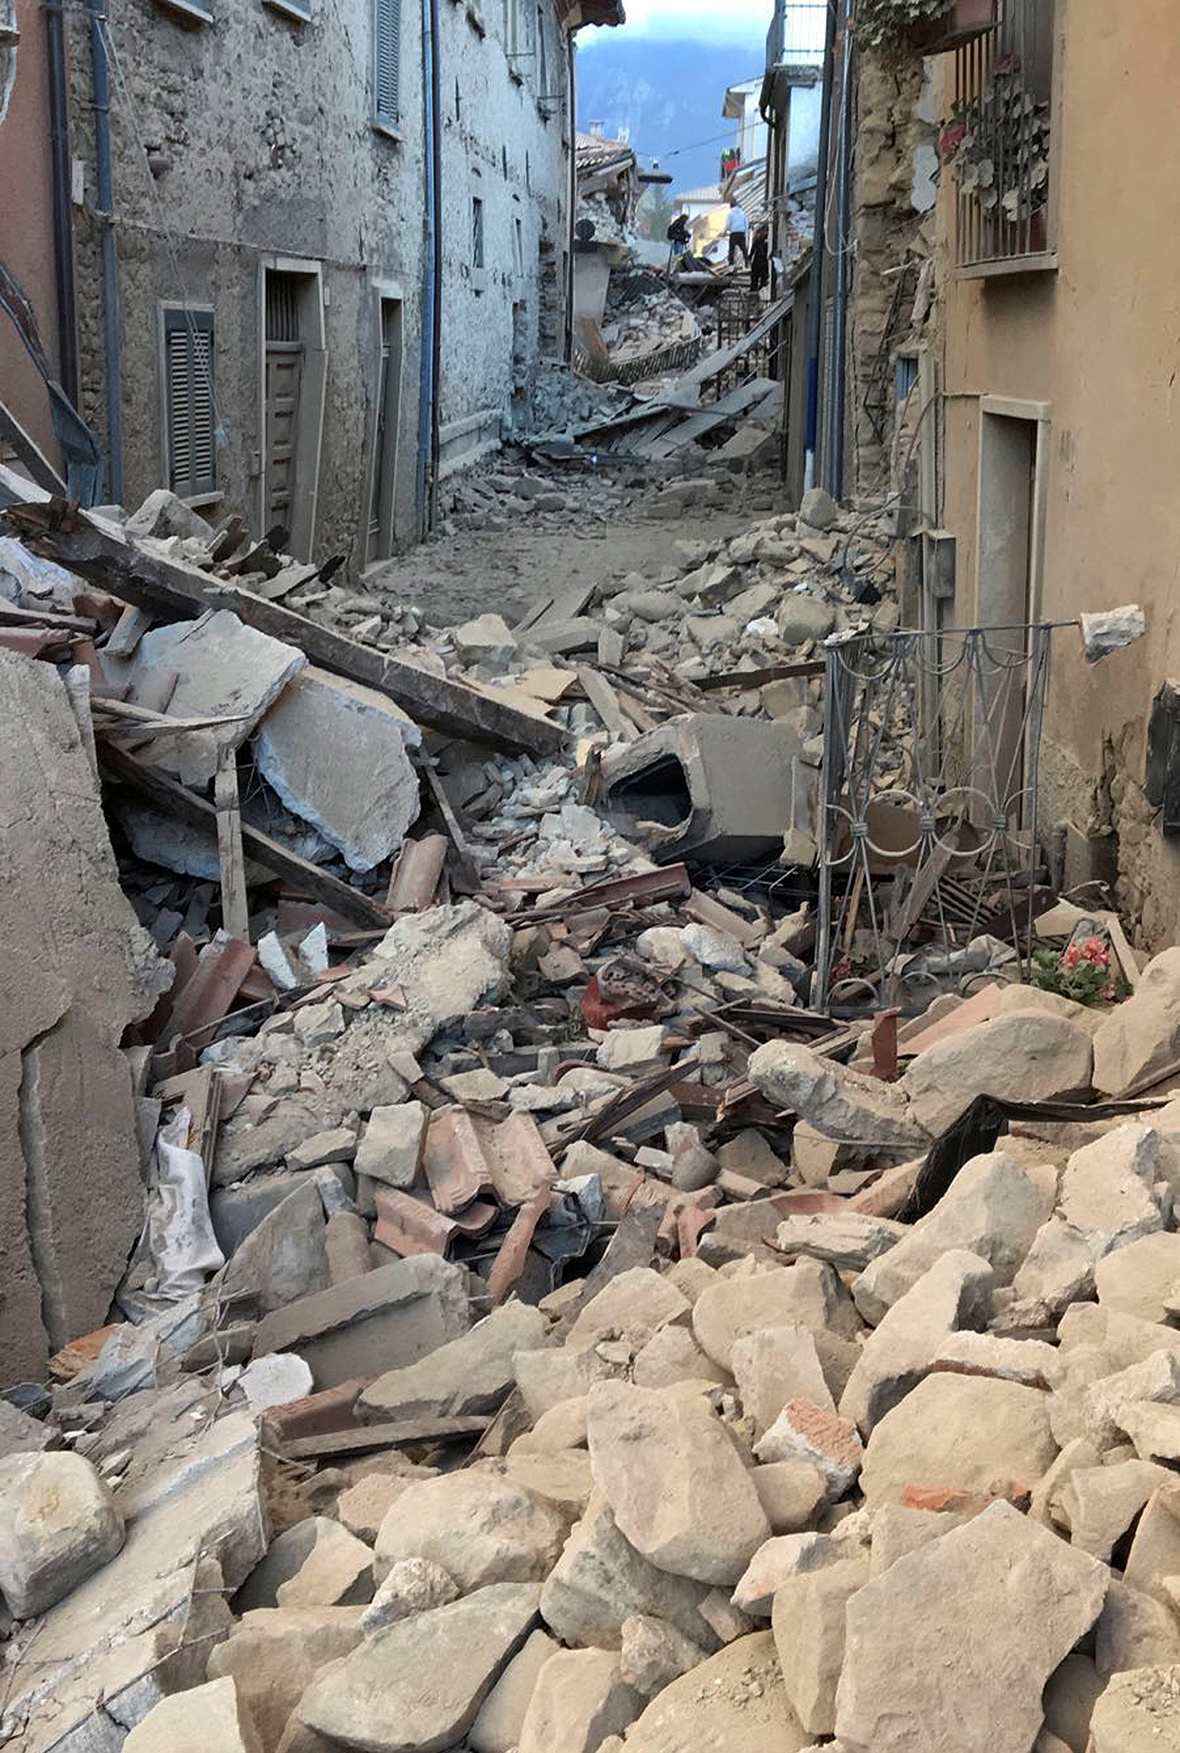 Death toll rises to 159 in central Italy quake - The Blade |Italian Earthquake